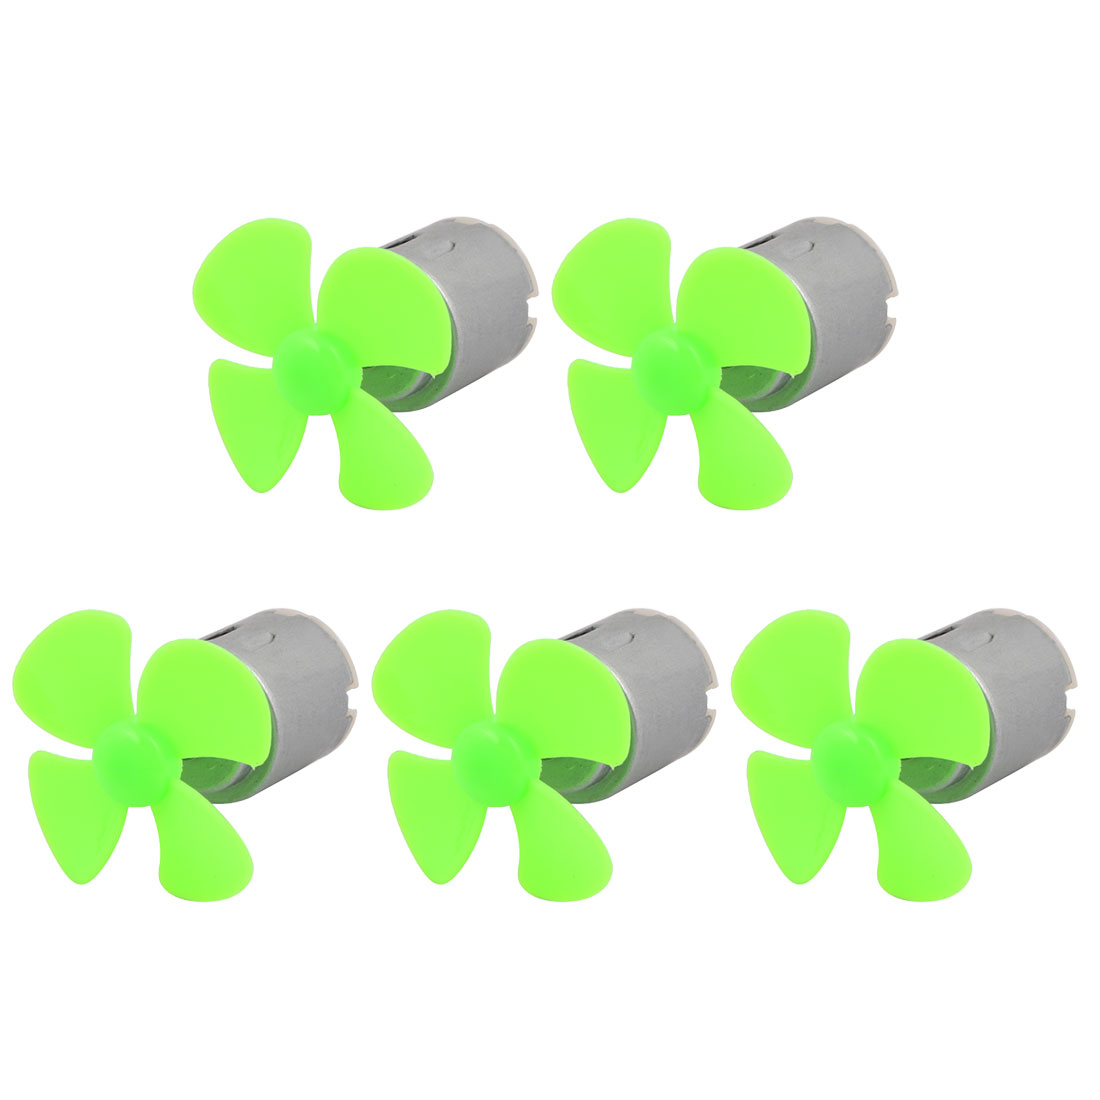 5pcs DC 3V 0.13A 12500RPM Strong Force Motor 4 Vanes 40mm Green Propeller for RC Aircraft